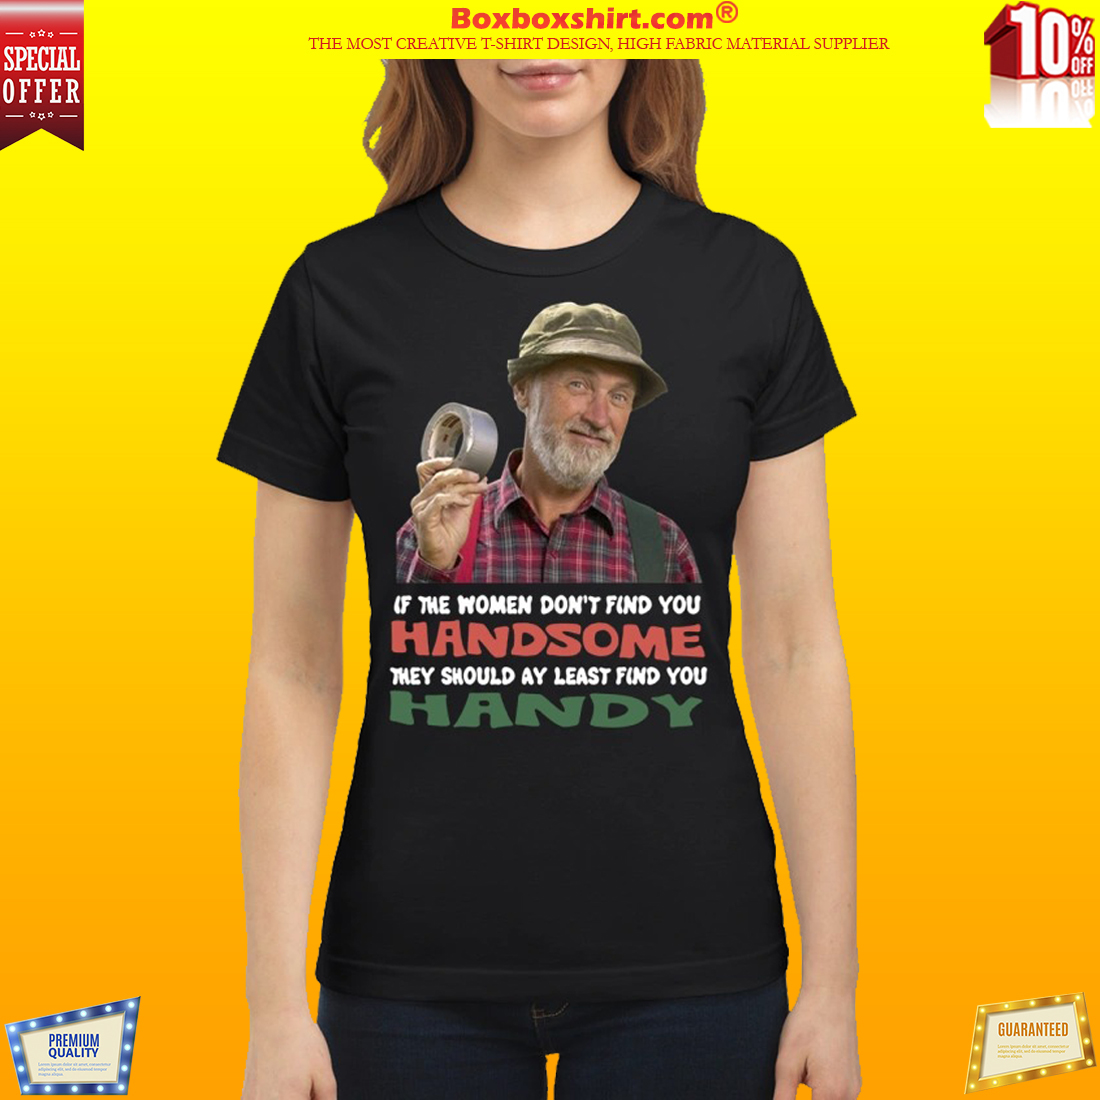 Red green show if they don't find you handsome classic shirt